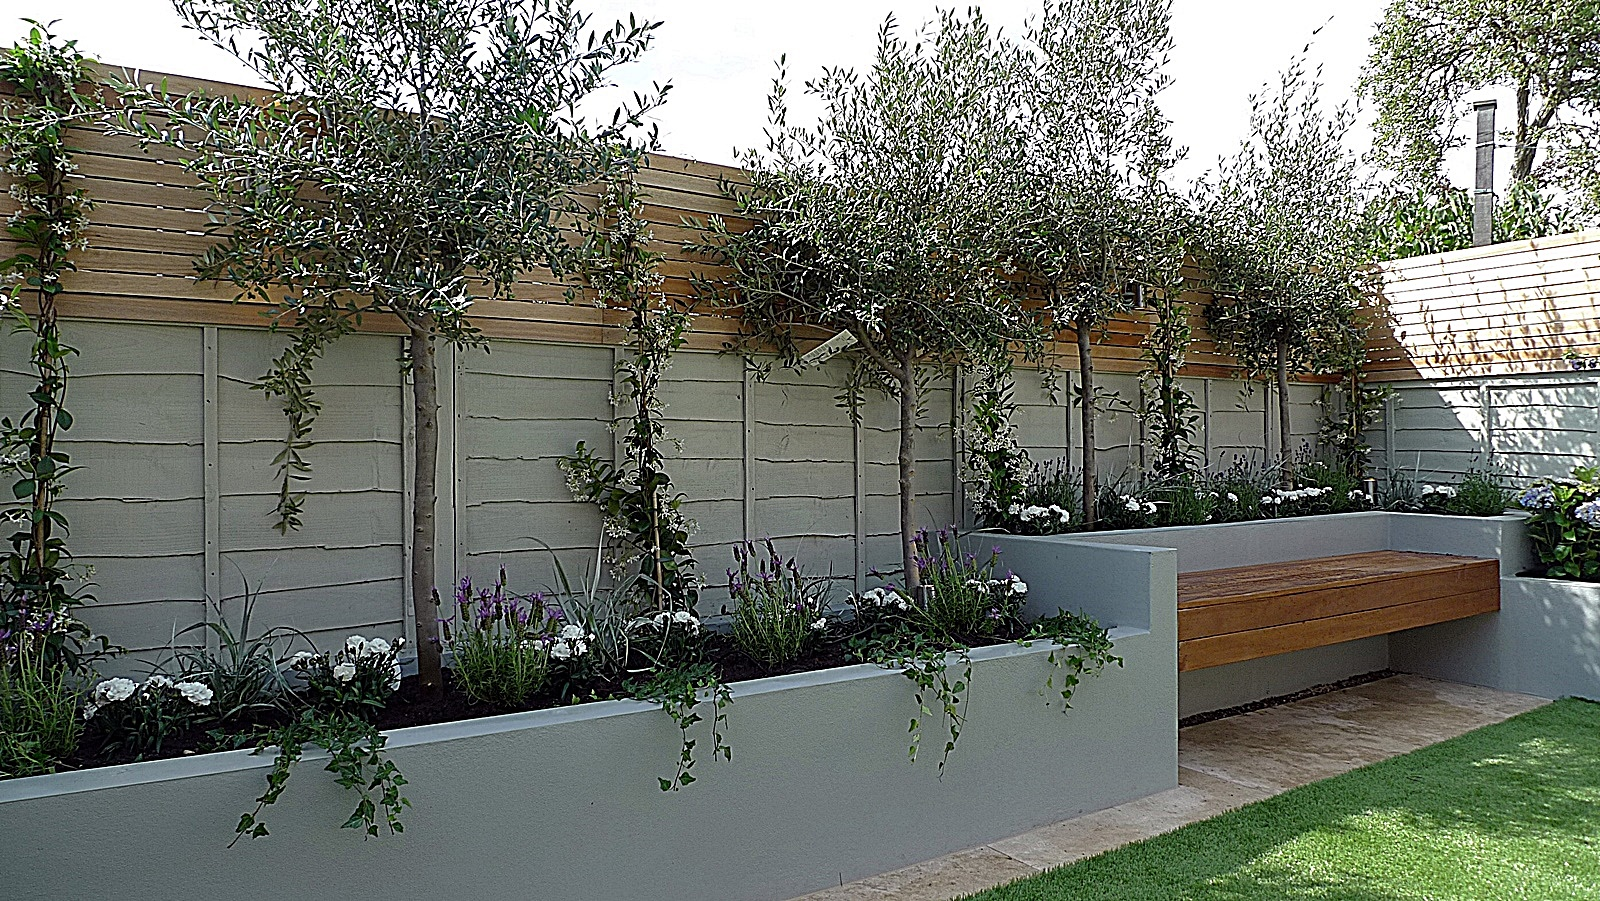 Painted Designs On Garden Fences